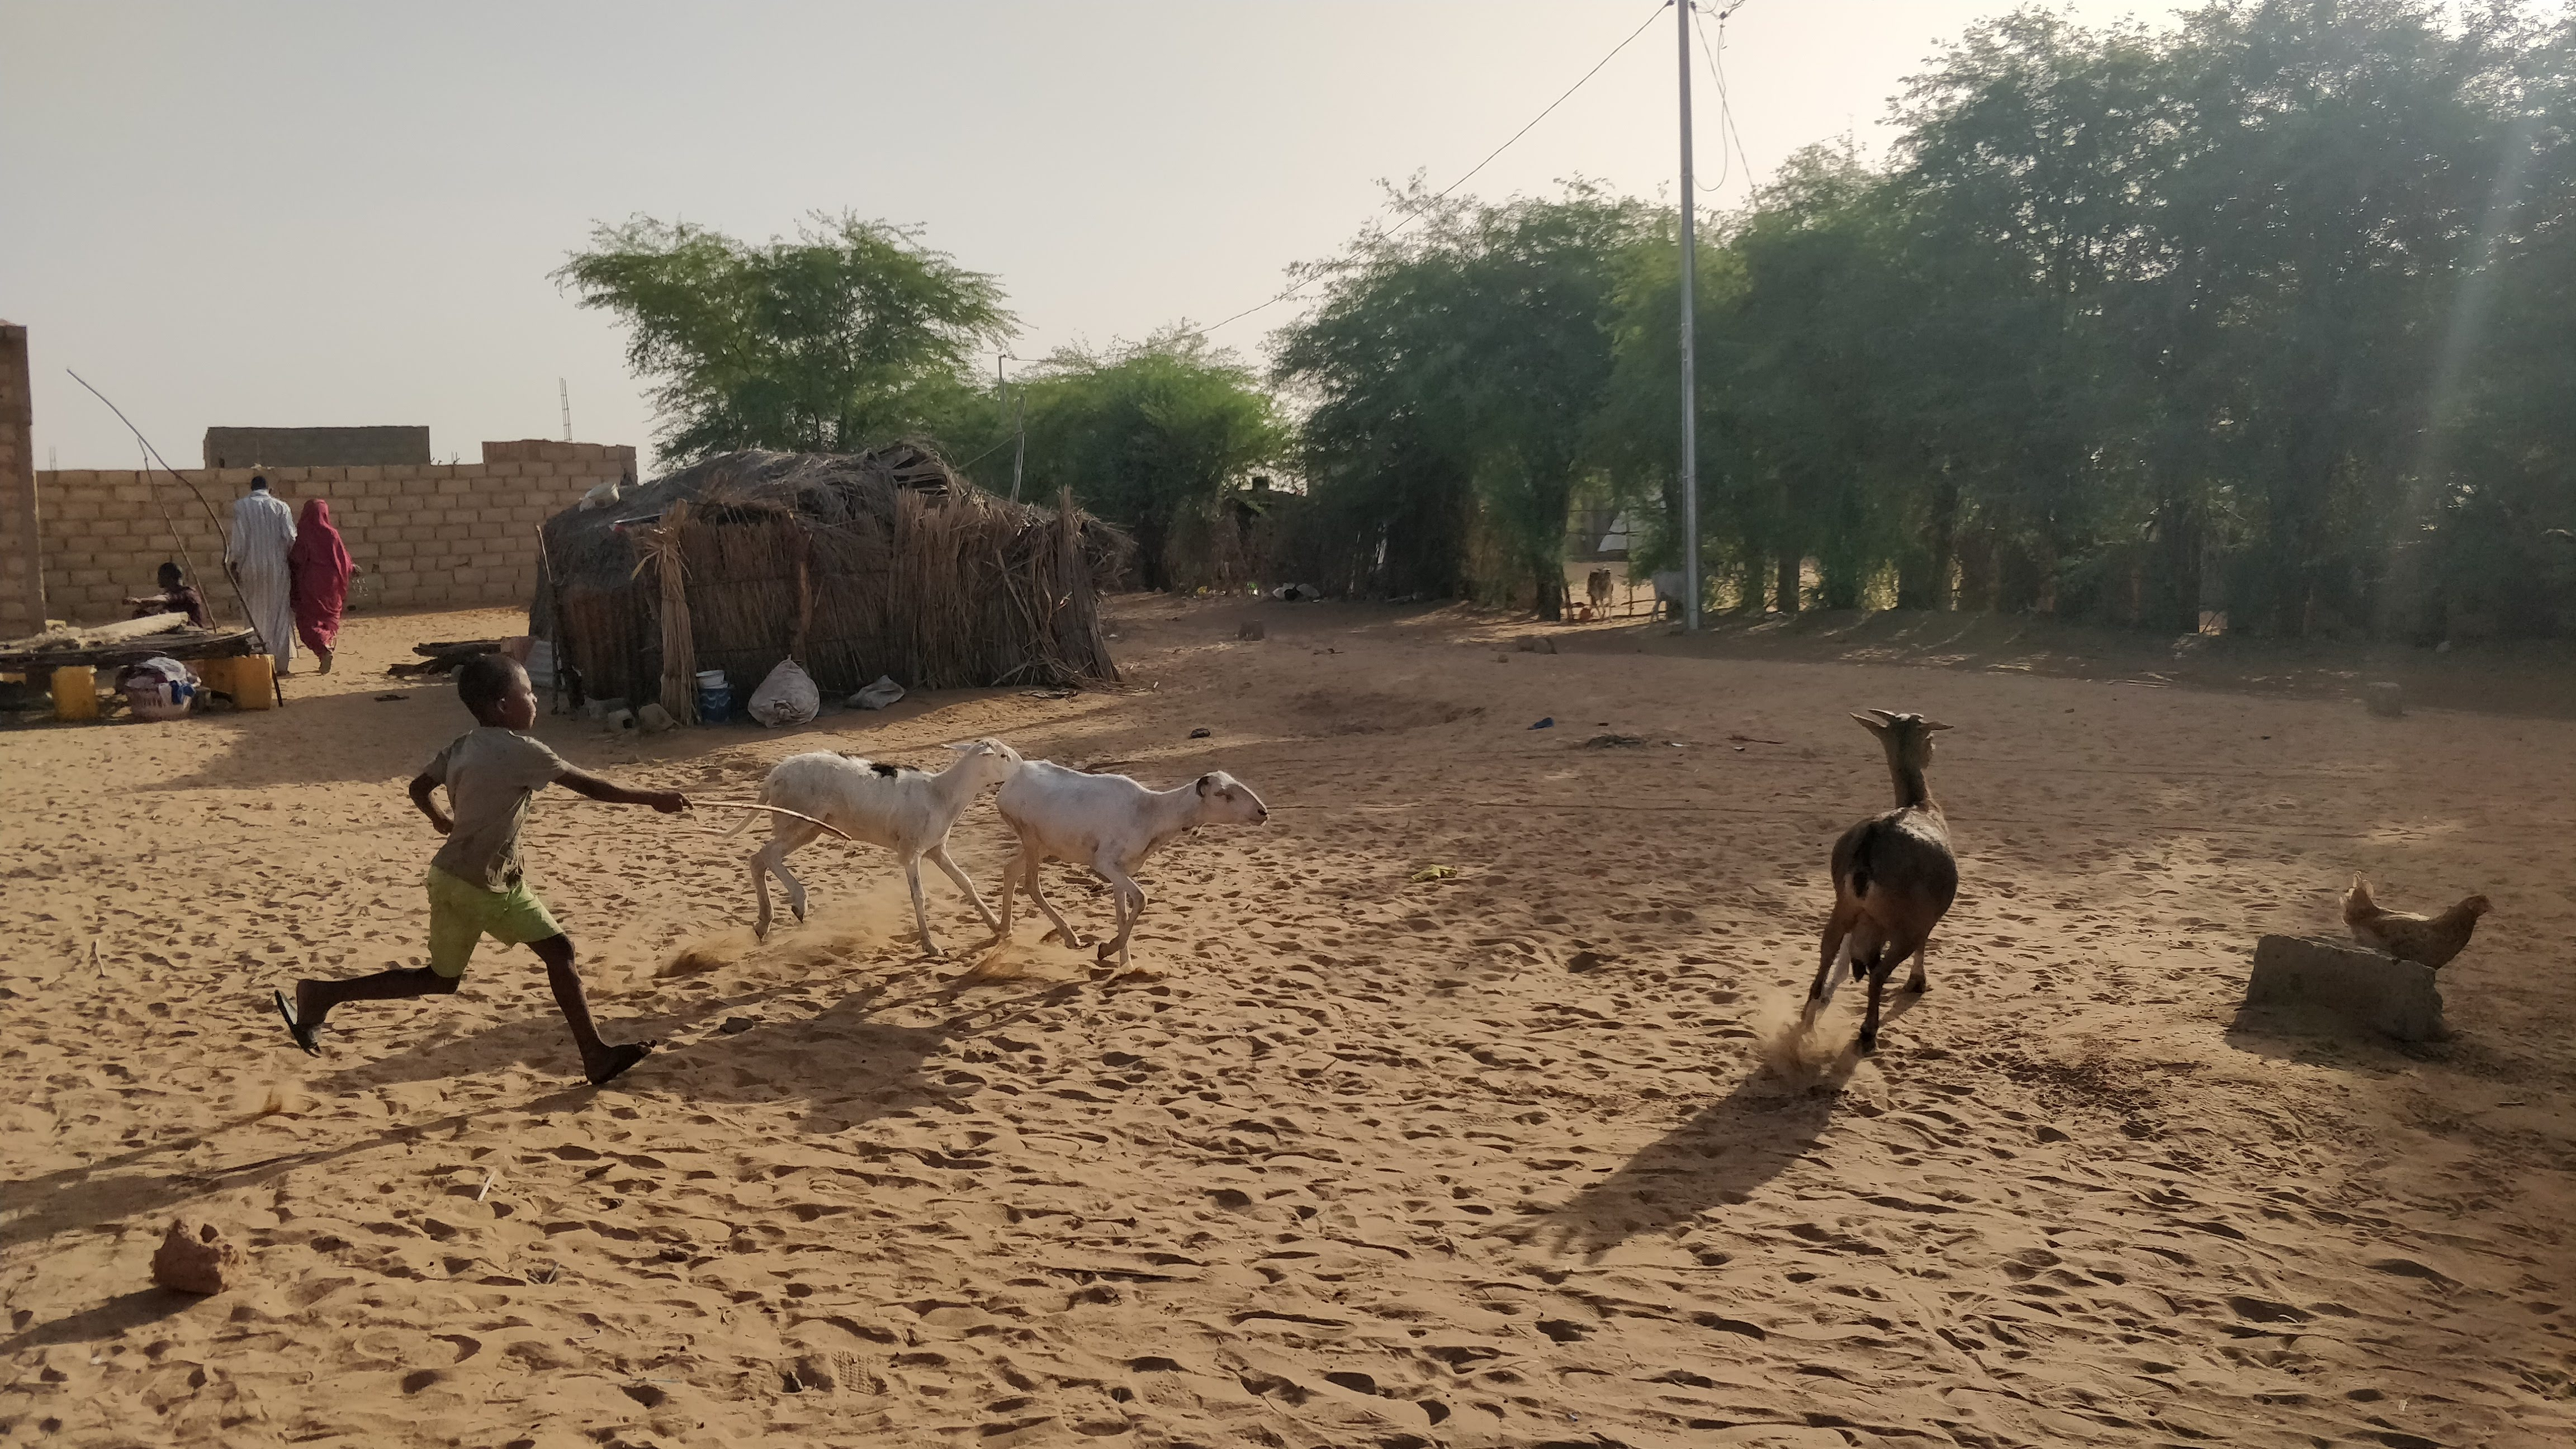 There are over 14,000 registered refugees living in camps in the north of Senegal (MEE/Amandla Thomas-Johnson)